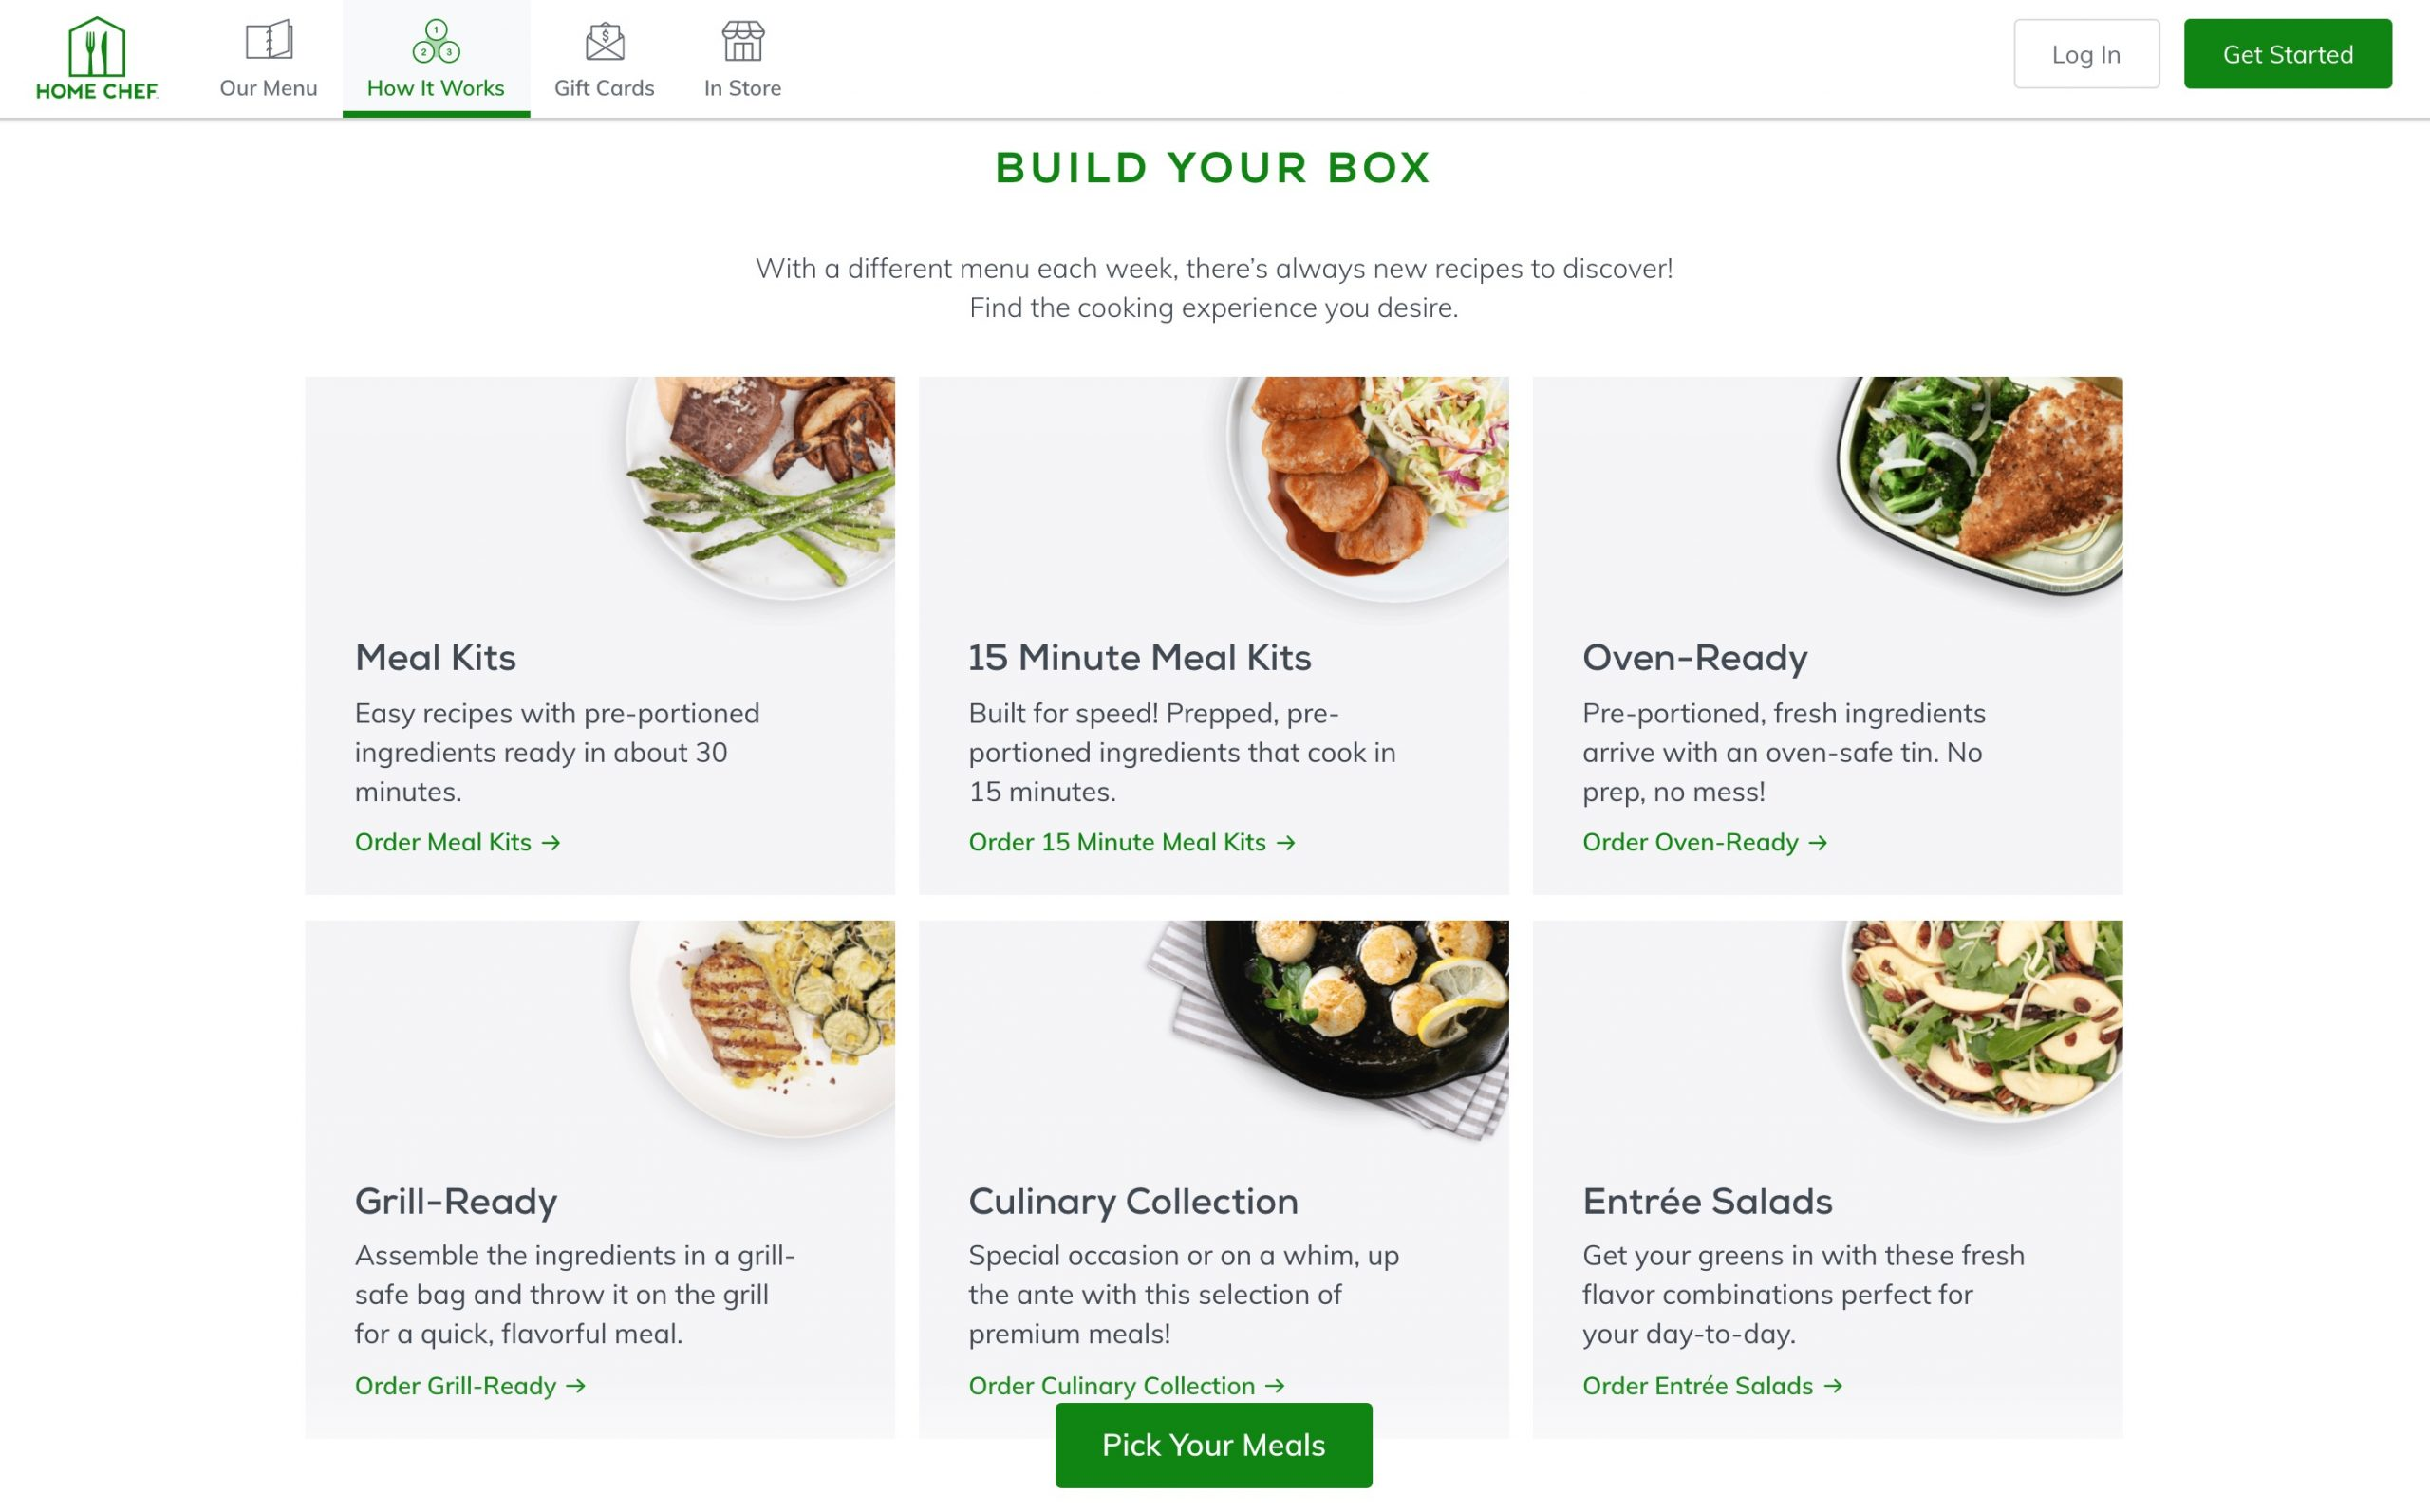 Home Chef build your box